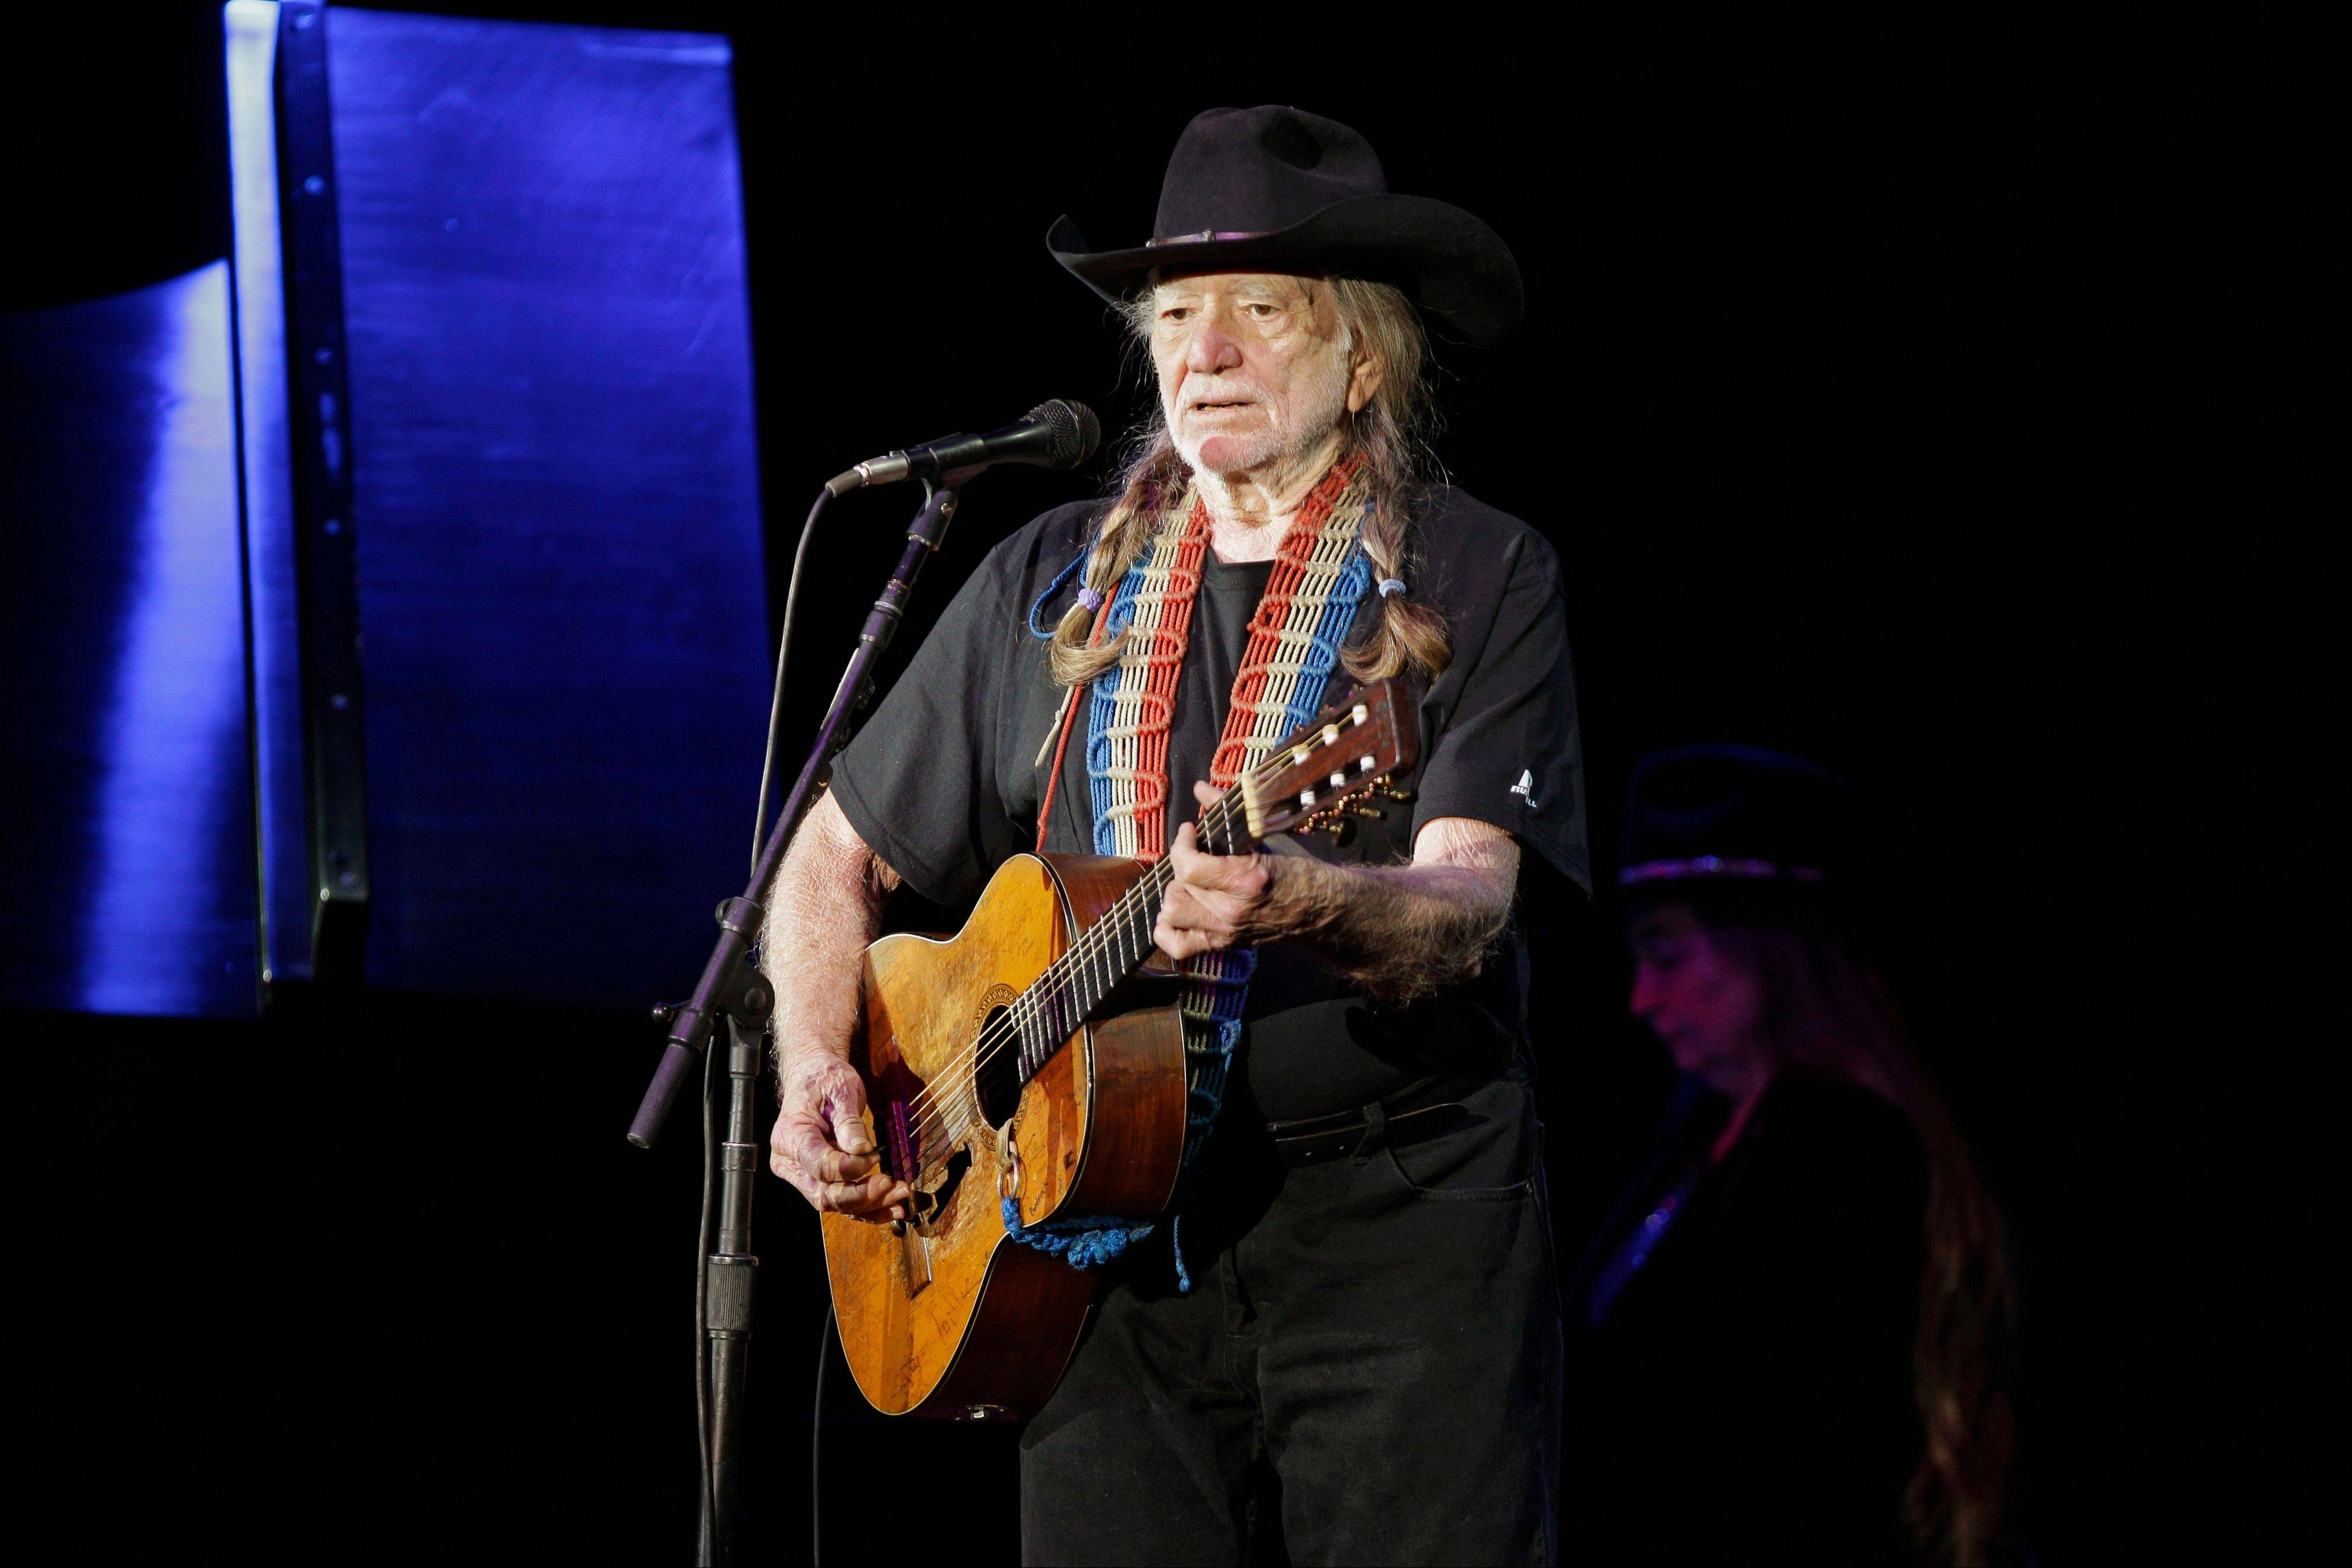 Organizers of a Colorado fundraiser say country music legend Willie Nelson canceled an appearance Saturday because of health problems.